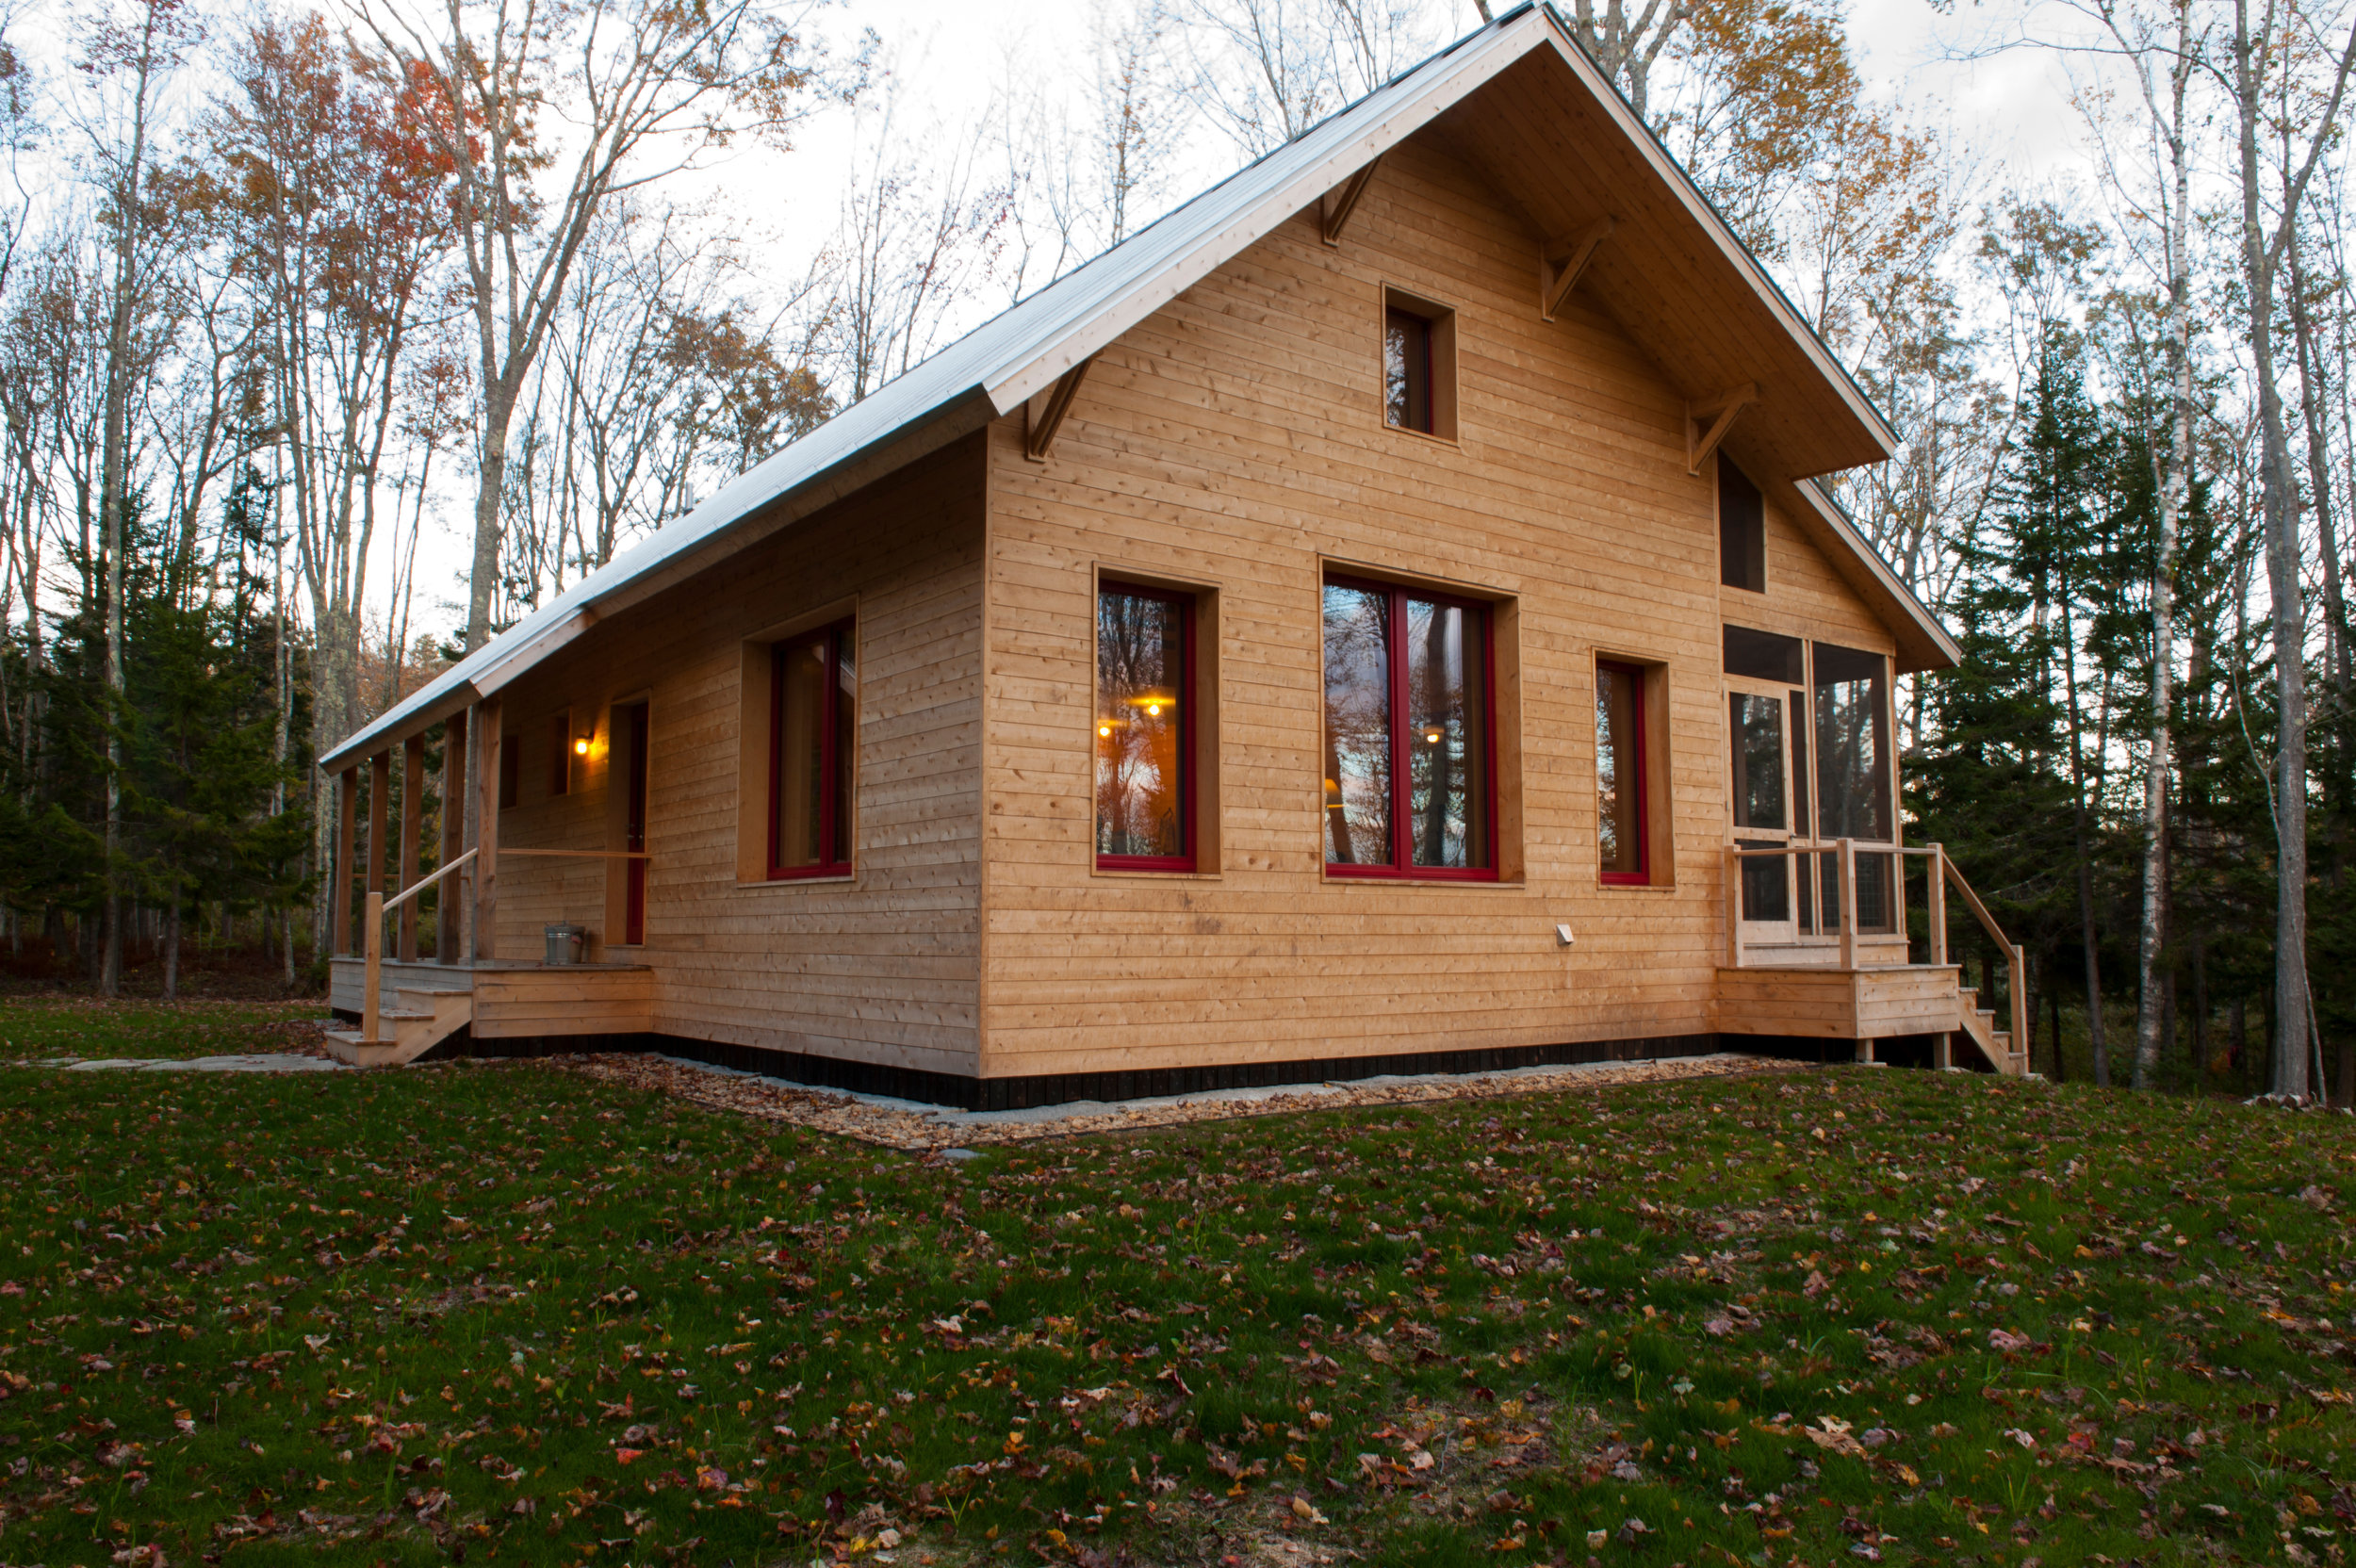 Designed by George Penniman Architects and constructed of highly insulated, pre-fabricated panels by Ecocor, this Harpswell cabin has an estimated $400 annual cost for heat and electricity. Photo: ncob photo